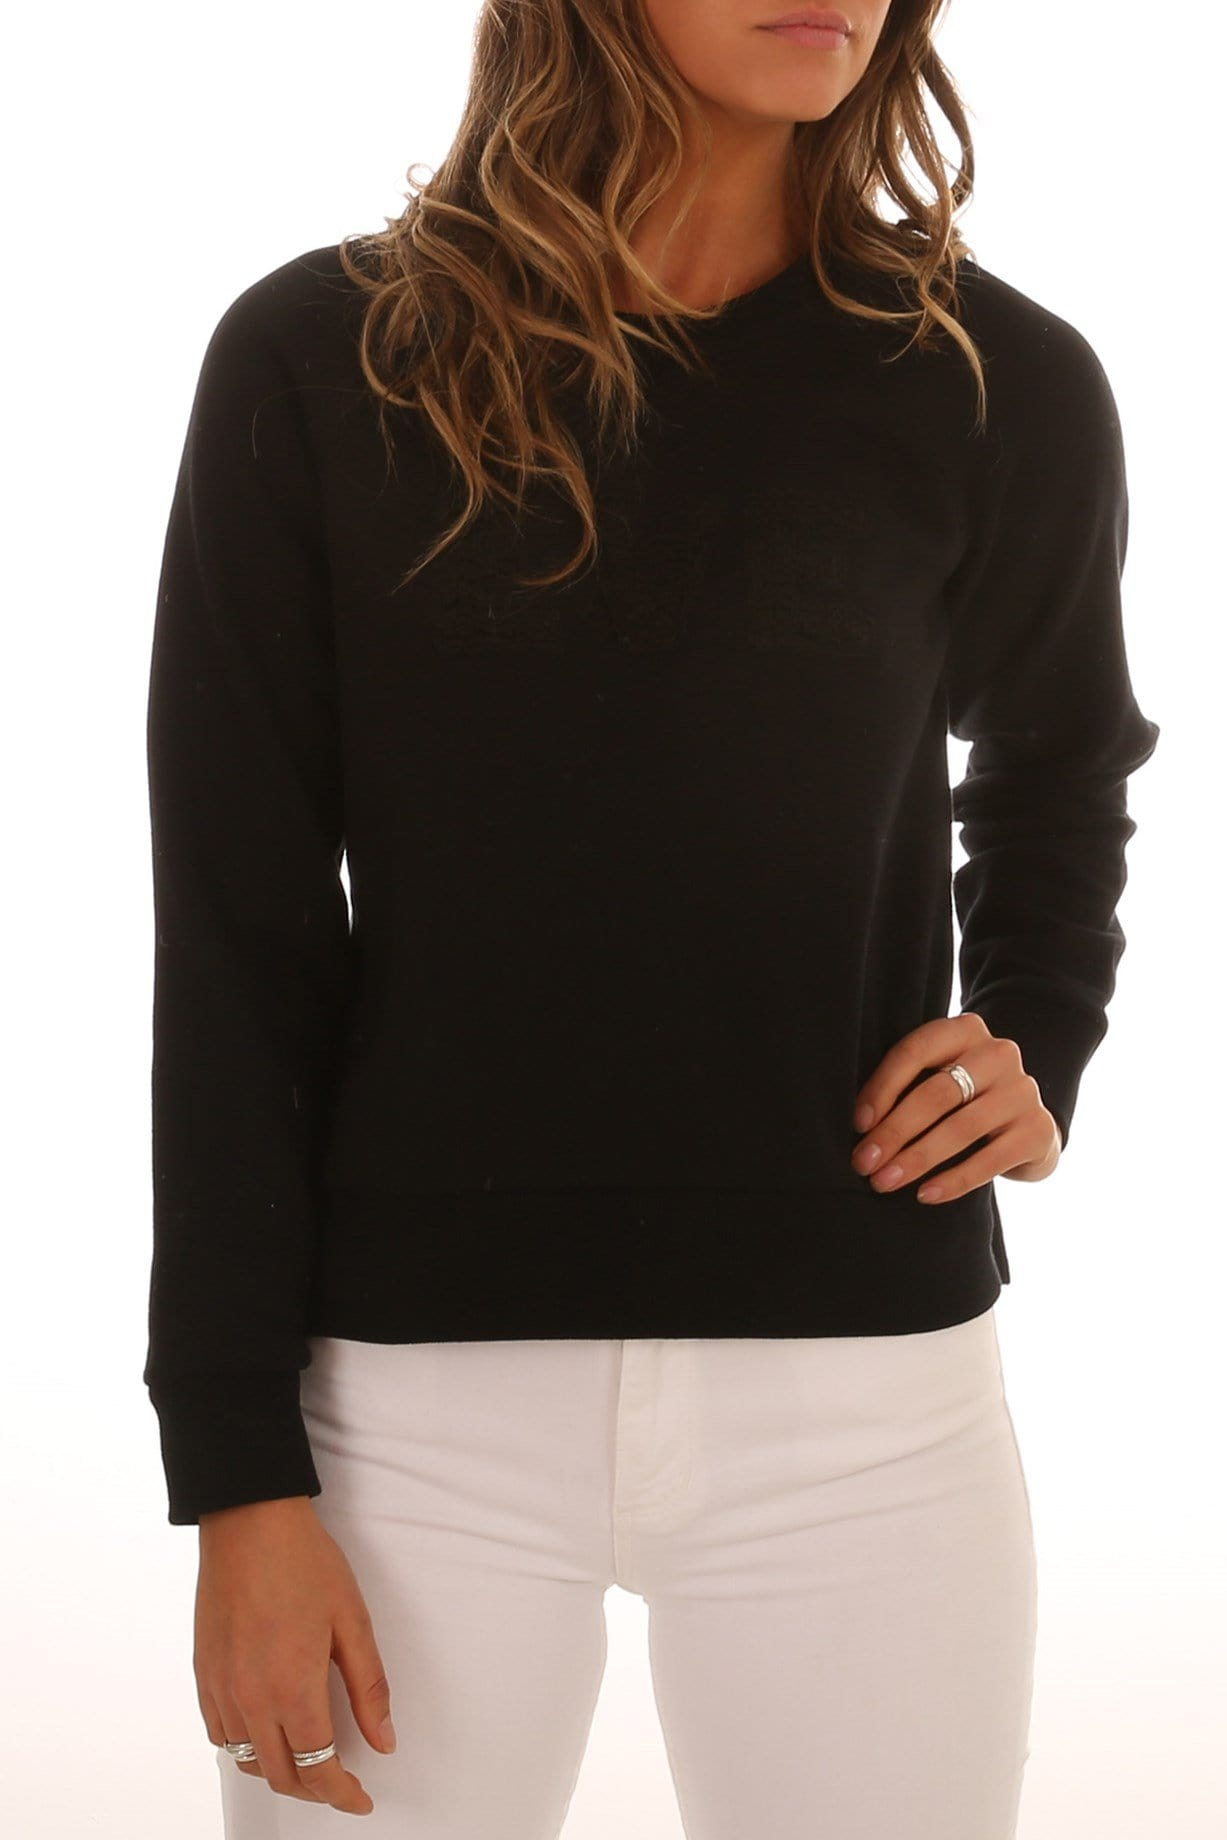 Alannah Fleece Crew Neck Black